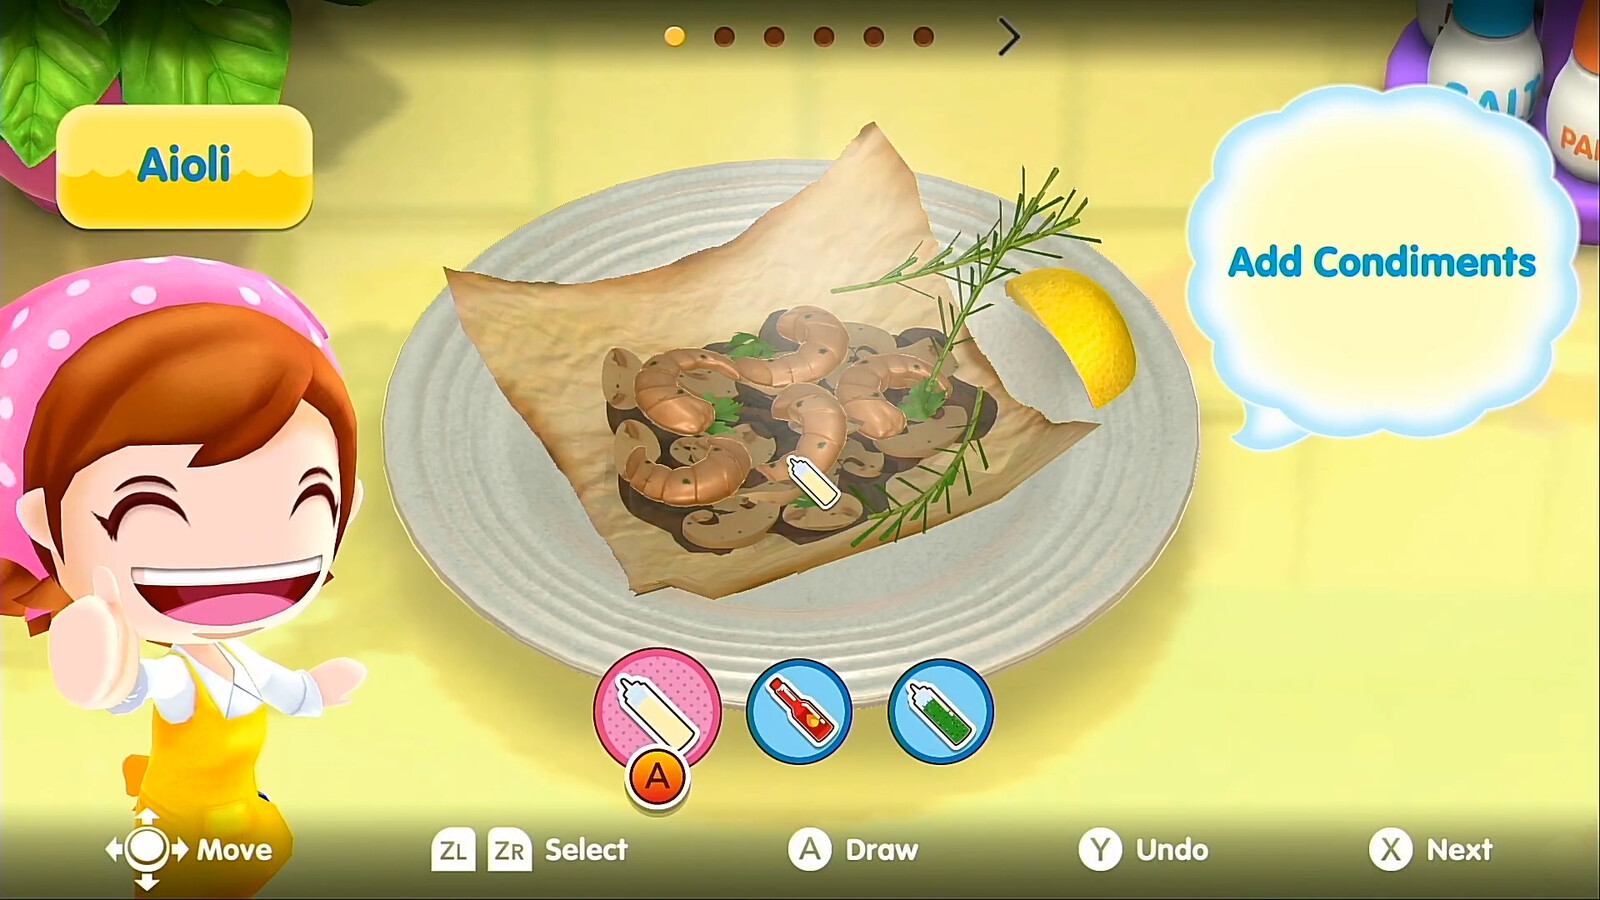 I setup this final plating for the Mushrooms en Papillote dish. Some assets were already created for other dishes/minigames like the shrimp and rosemary, some assets were original like the sauce puddle and crinkled paper wrapping.